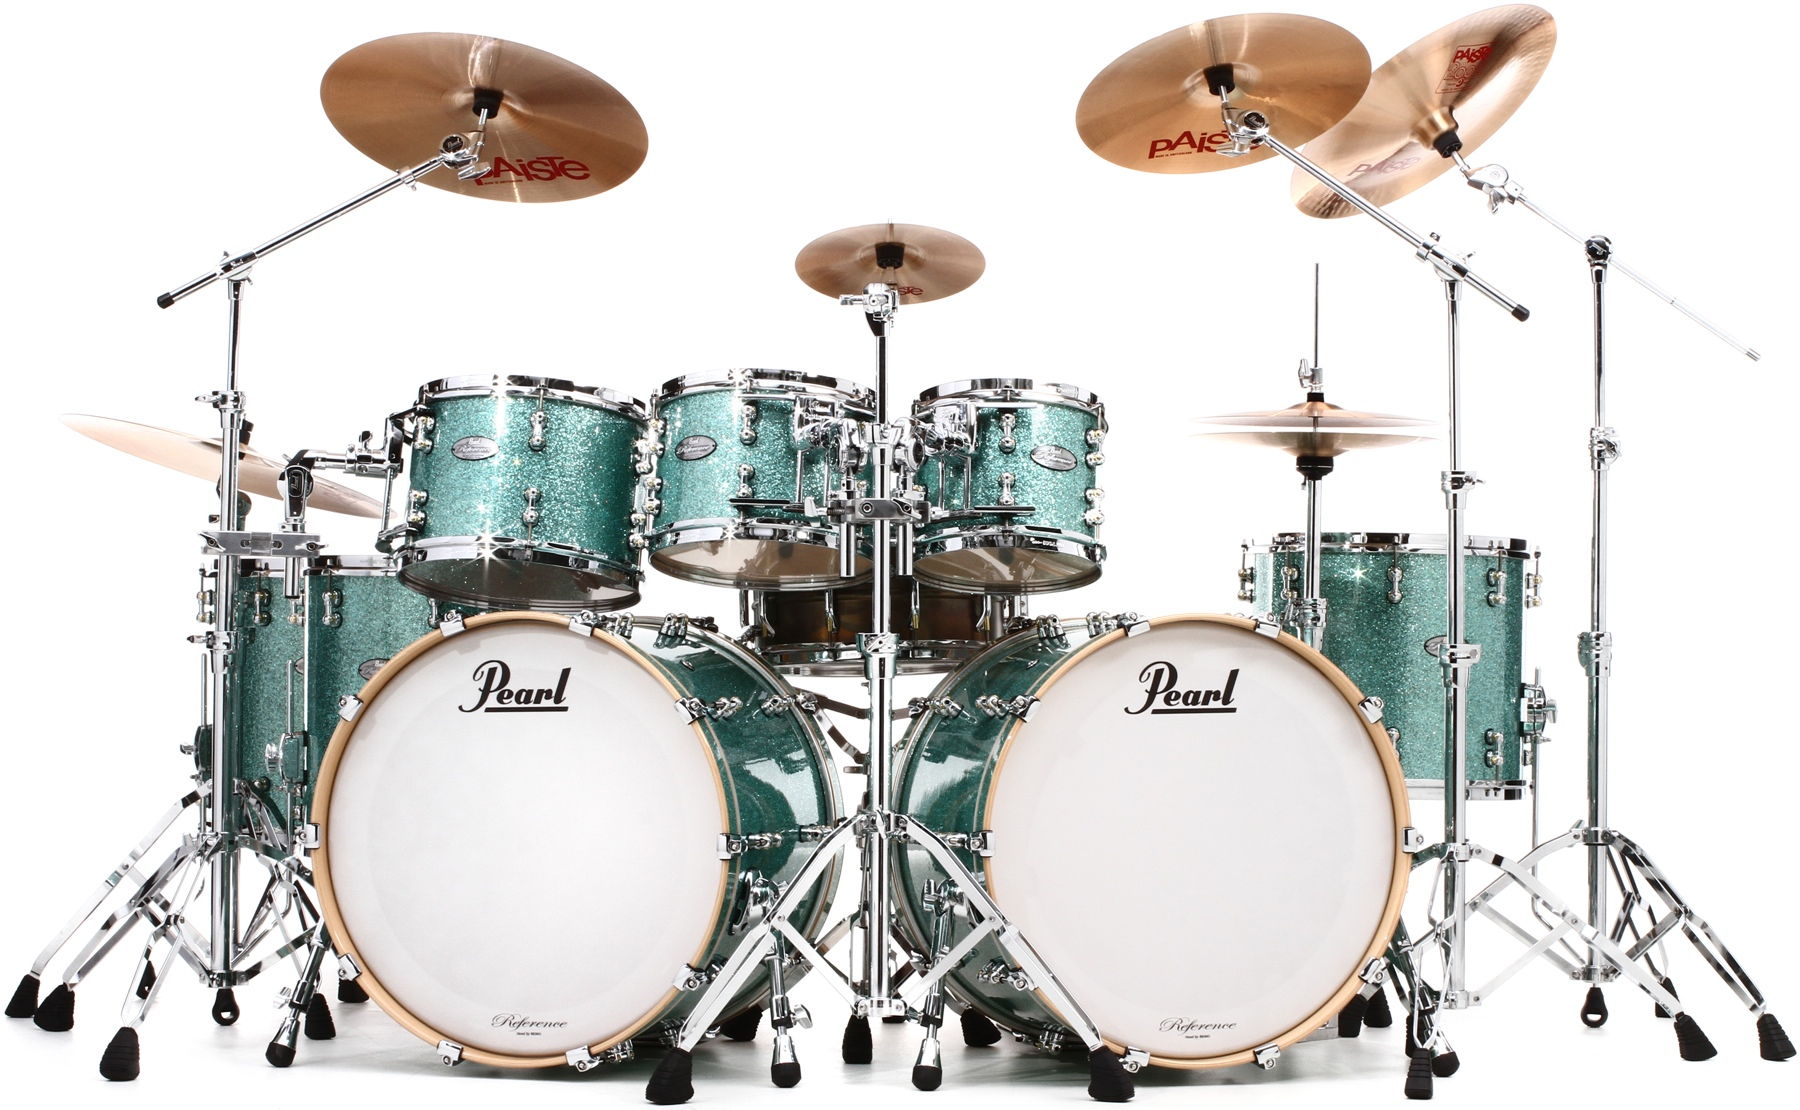 2. Pearl Music City Custom Reference Pure Double Bass Shell Pack 8-piece - Turquoise Glass